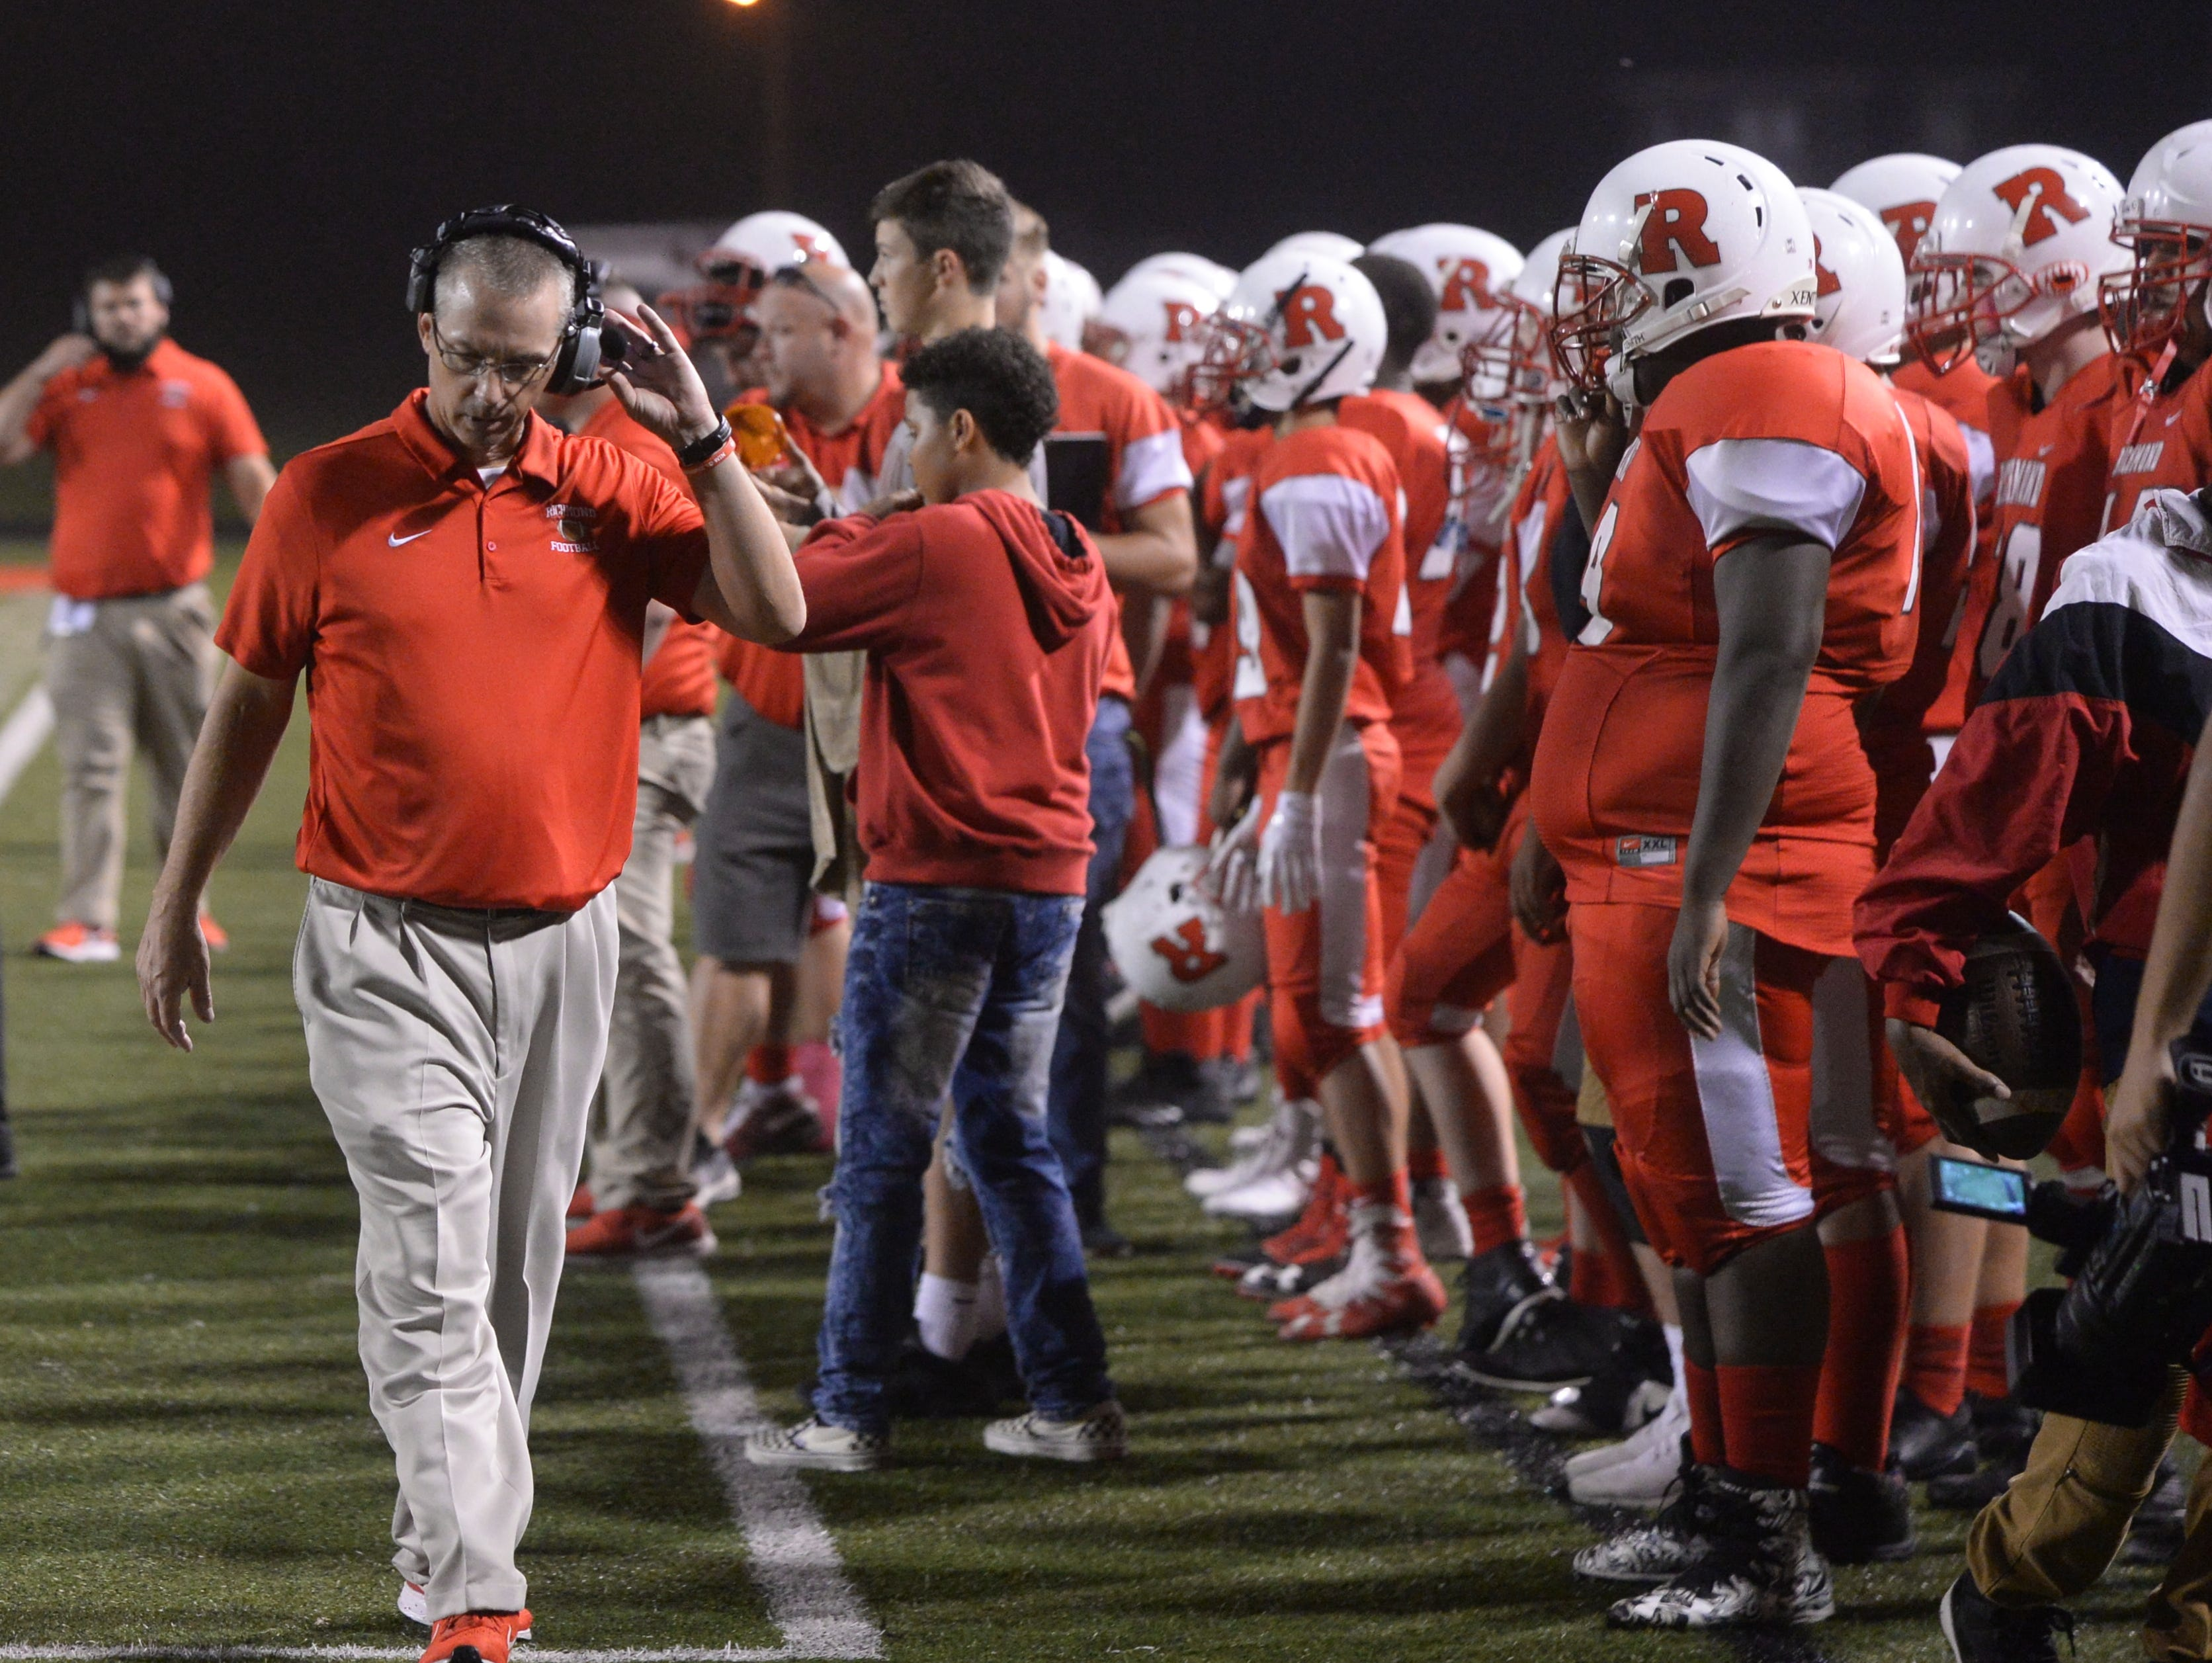 Richhmond High School football coach Tony Lewis during the Richmond High School football team's  27-26 loss to Anderson Friday, Oct. 5, 2018 at Lyboult Field.